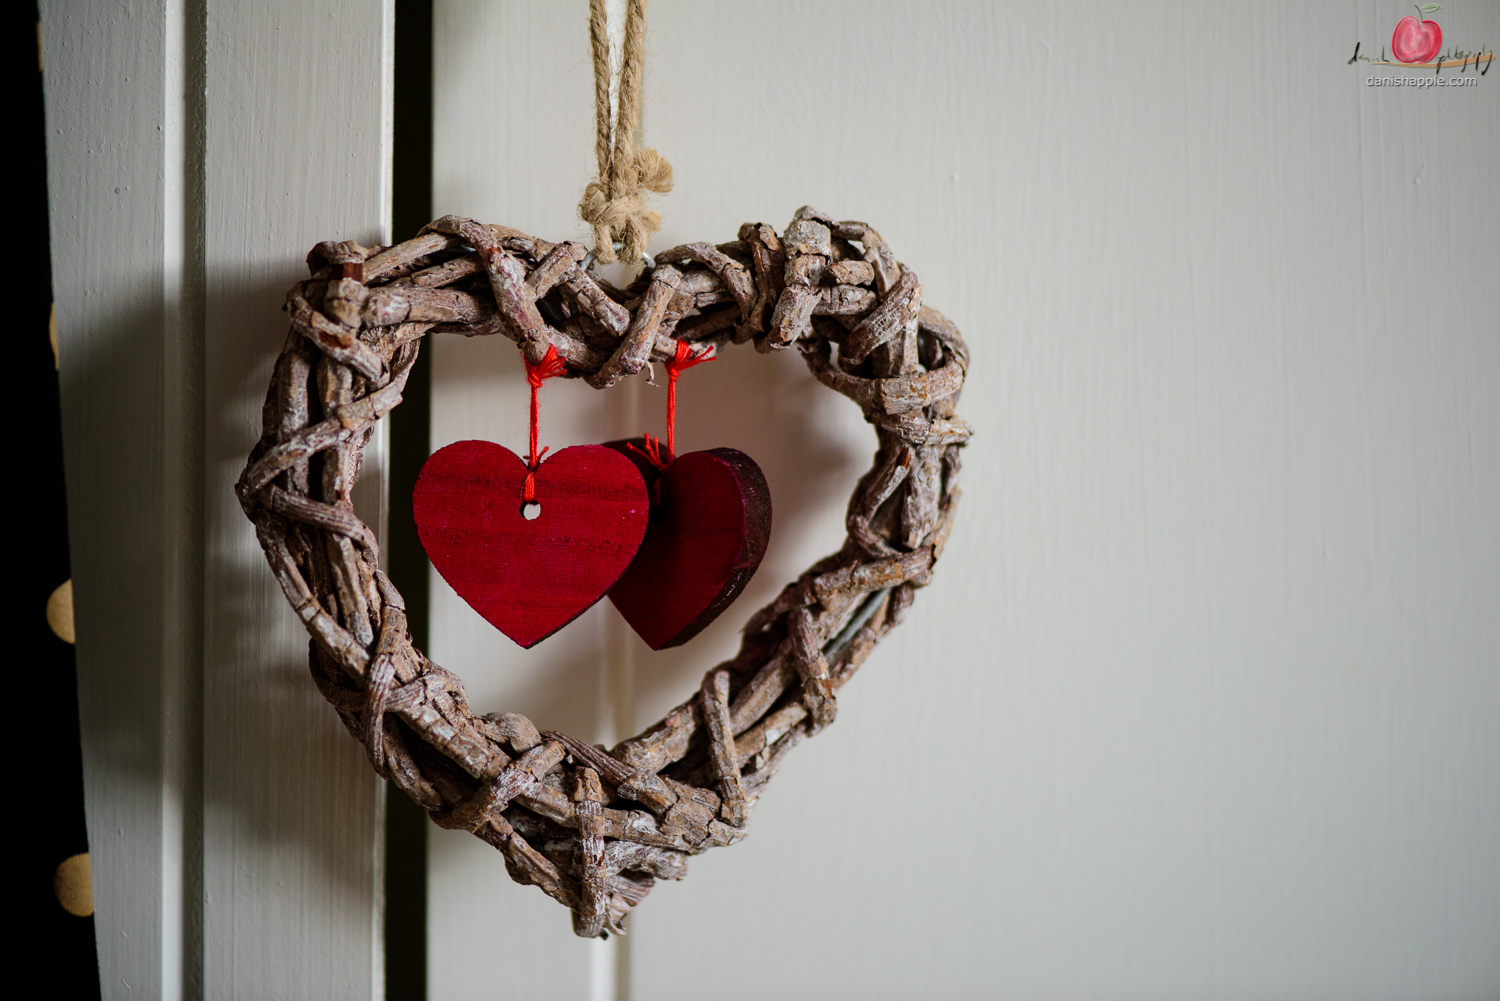 Love heart decoration shot with Nikon D810